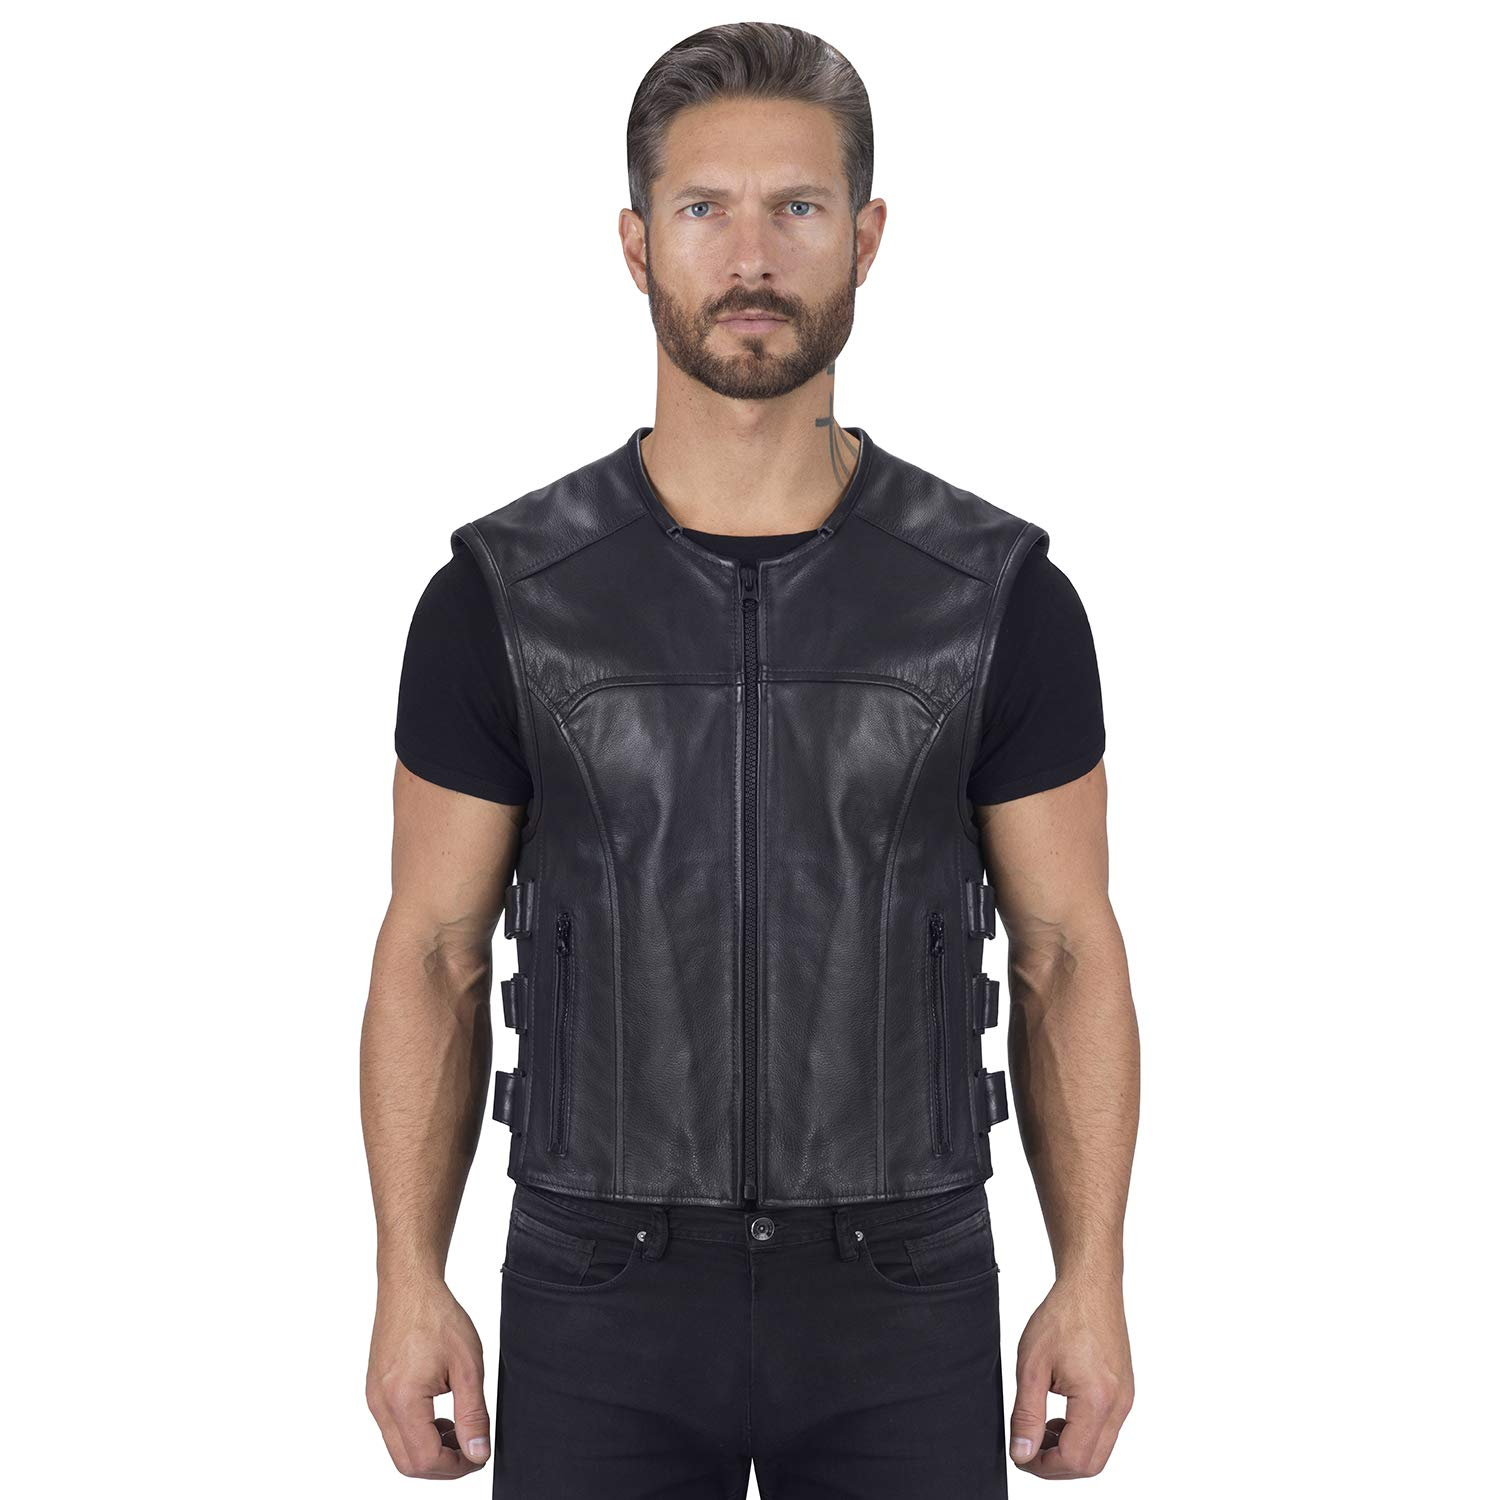 Viking Cycle Odin Leather Motorcycle Vest for Men (4X-Large) by Viking Cycle